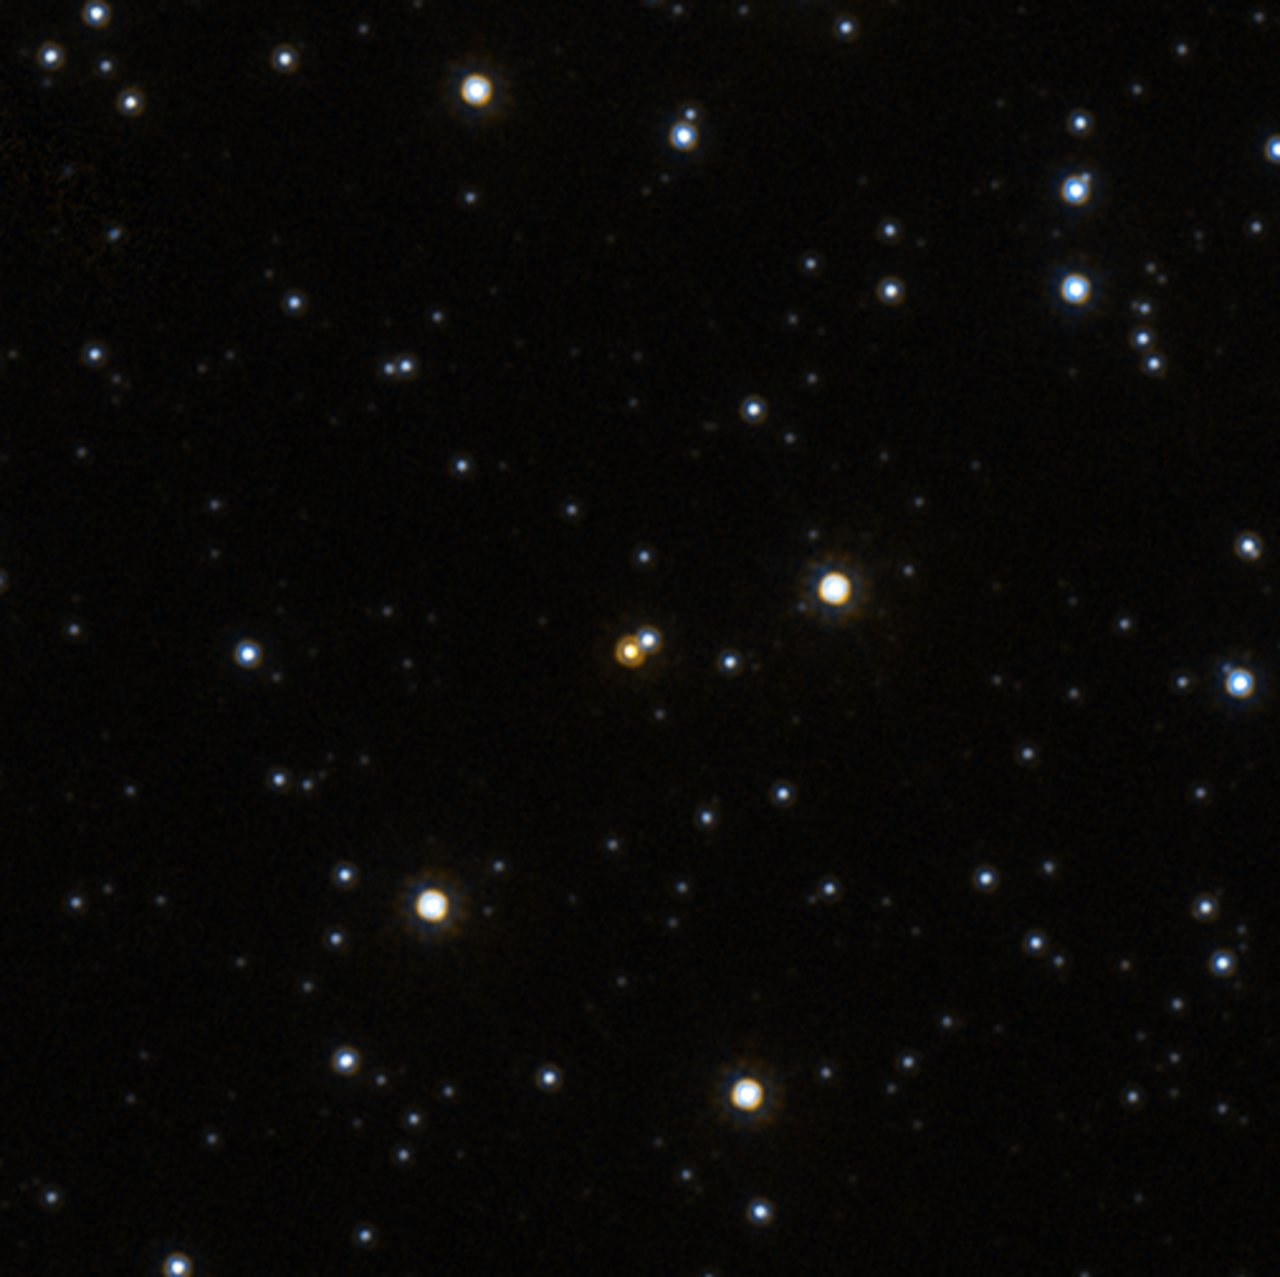 Hubble MACHO-LMC-5 2002